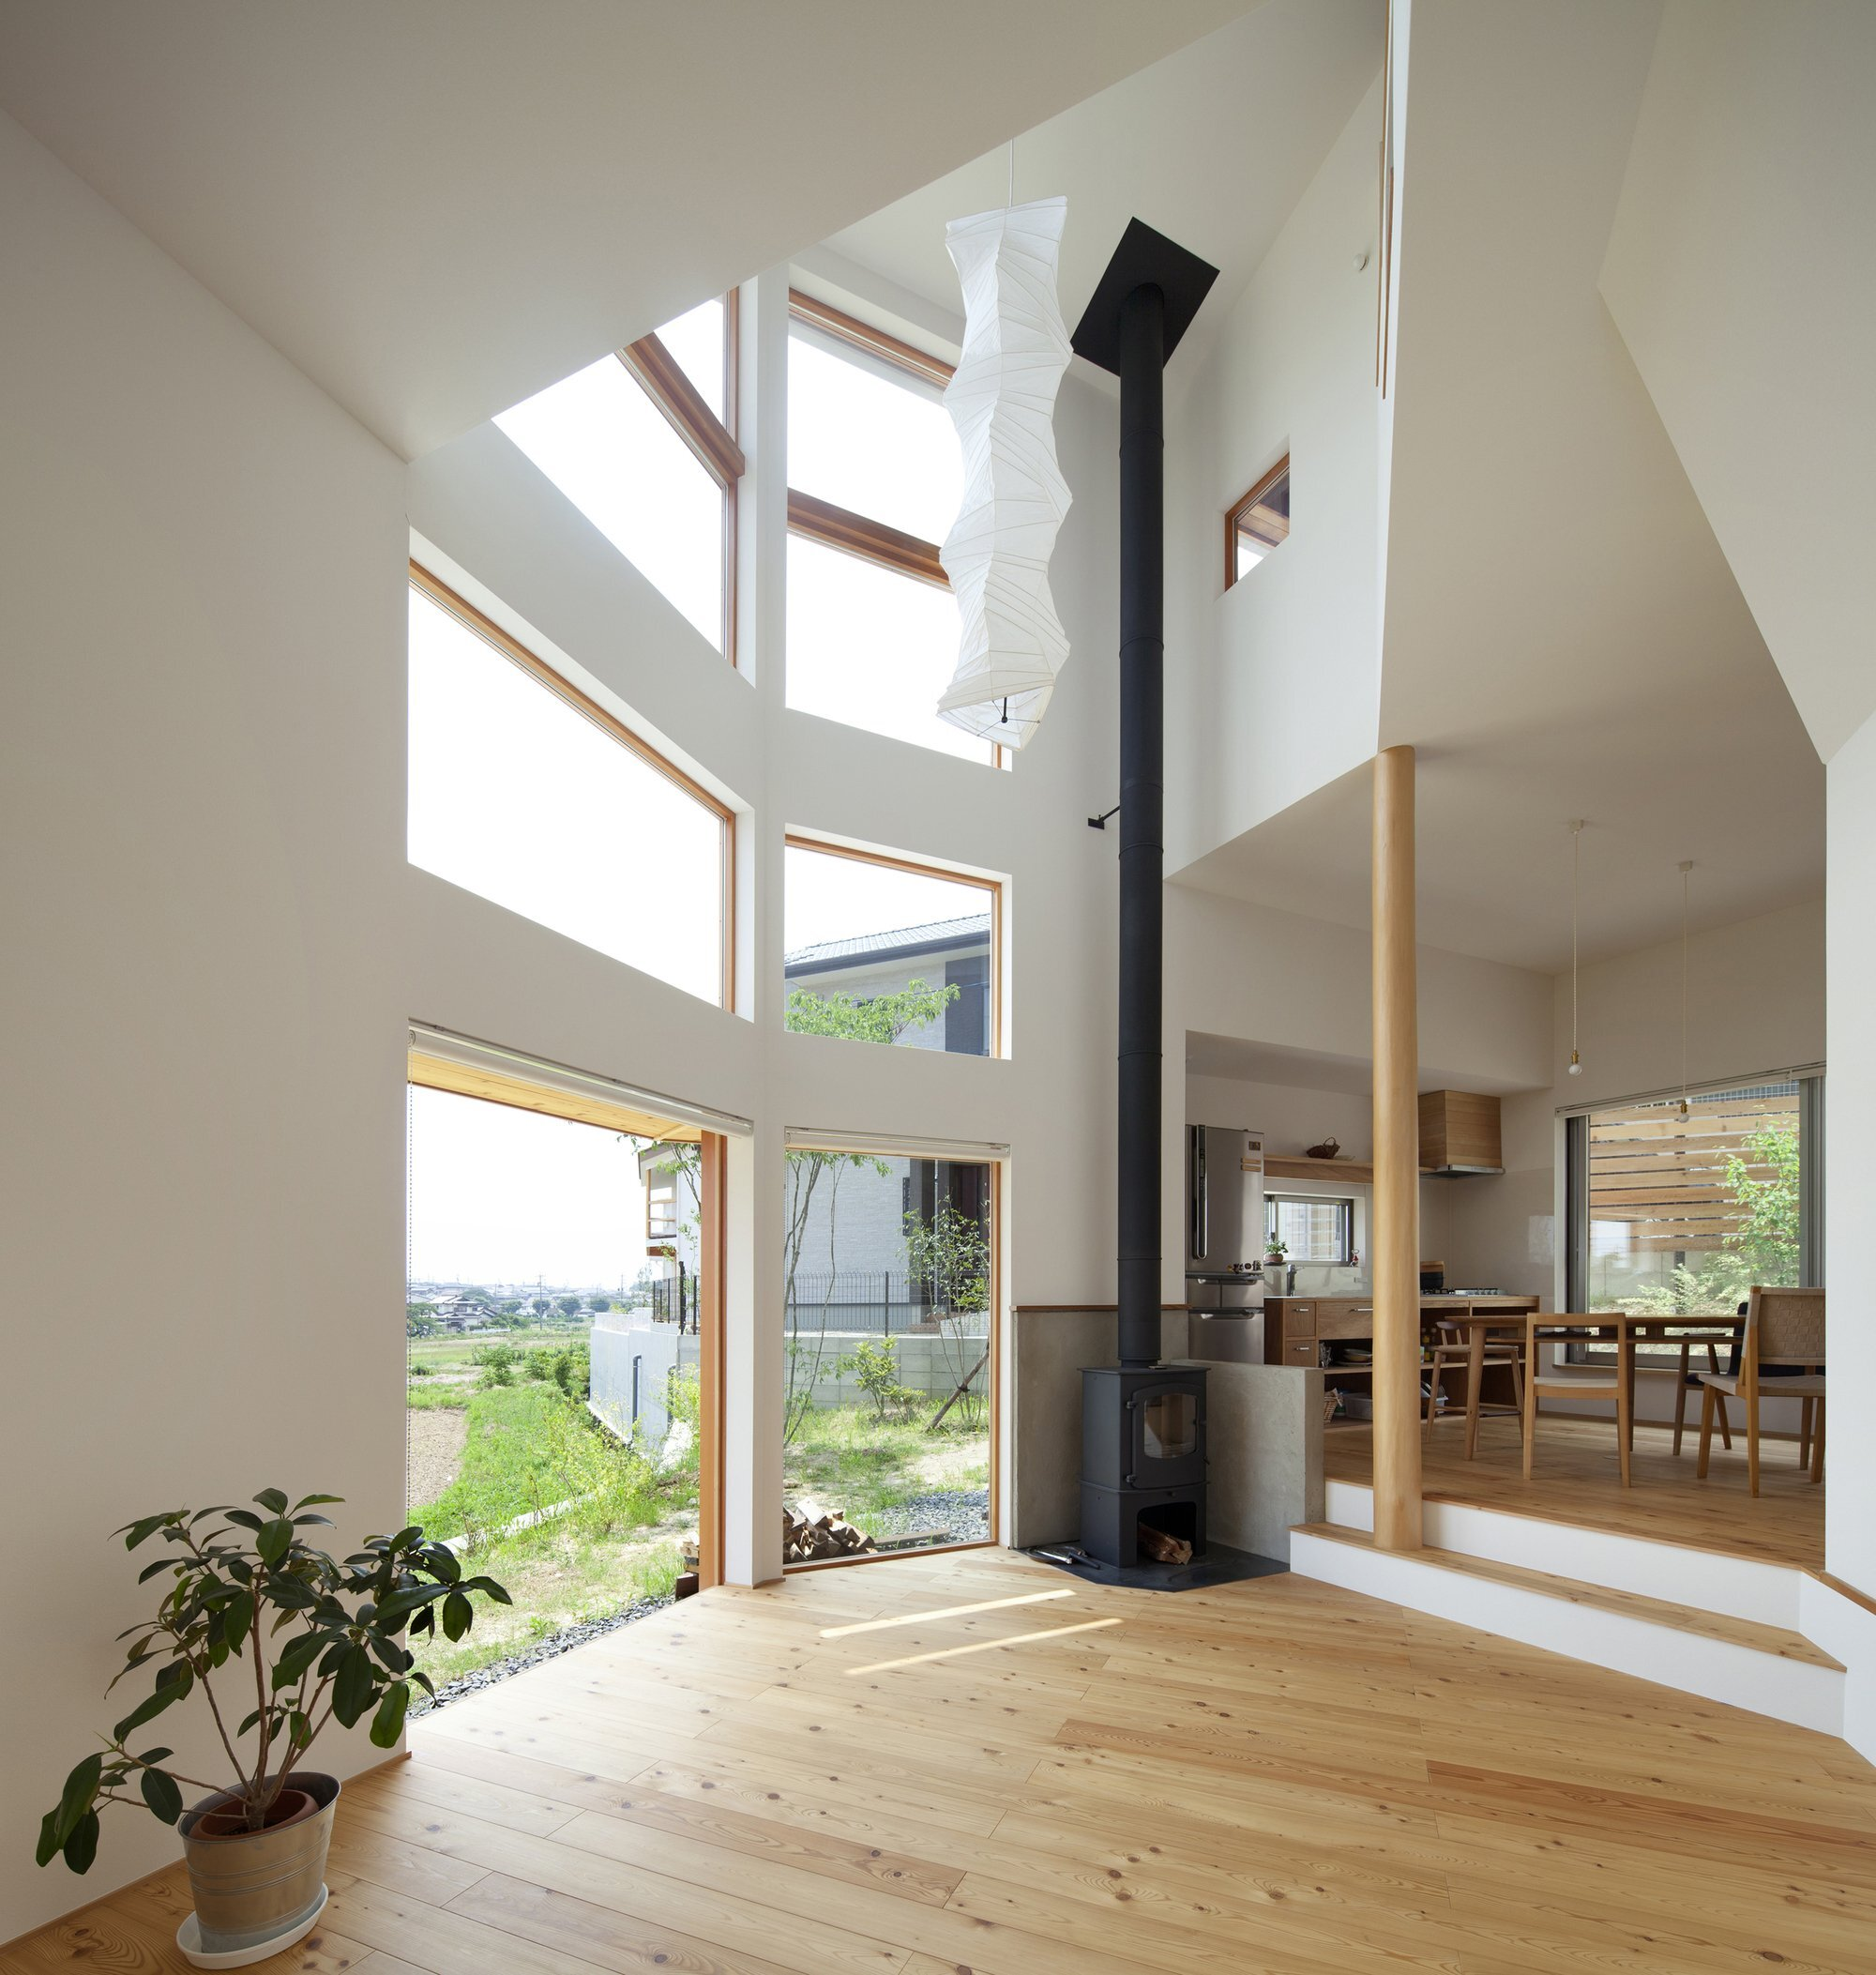 Gandare house a narrow japanese home by ninkipen for Modern japanese house interior design